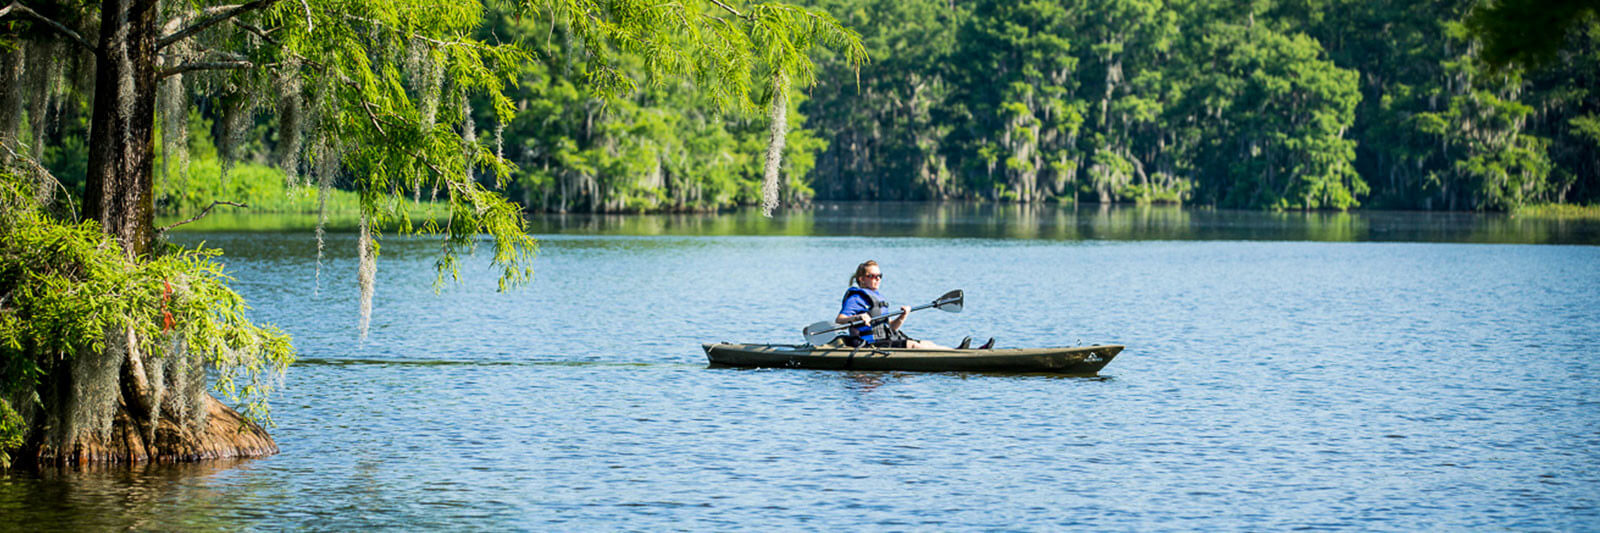 Lake Blackshear Packages Specials 2